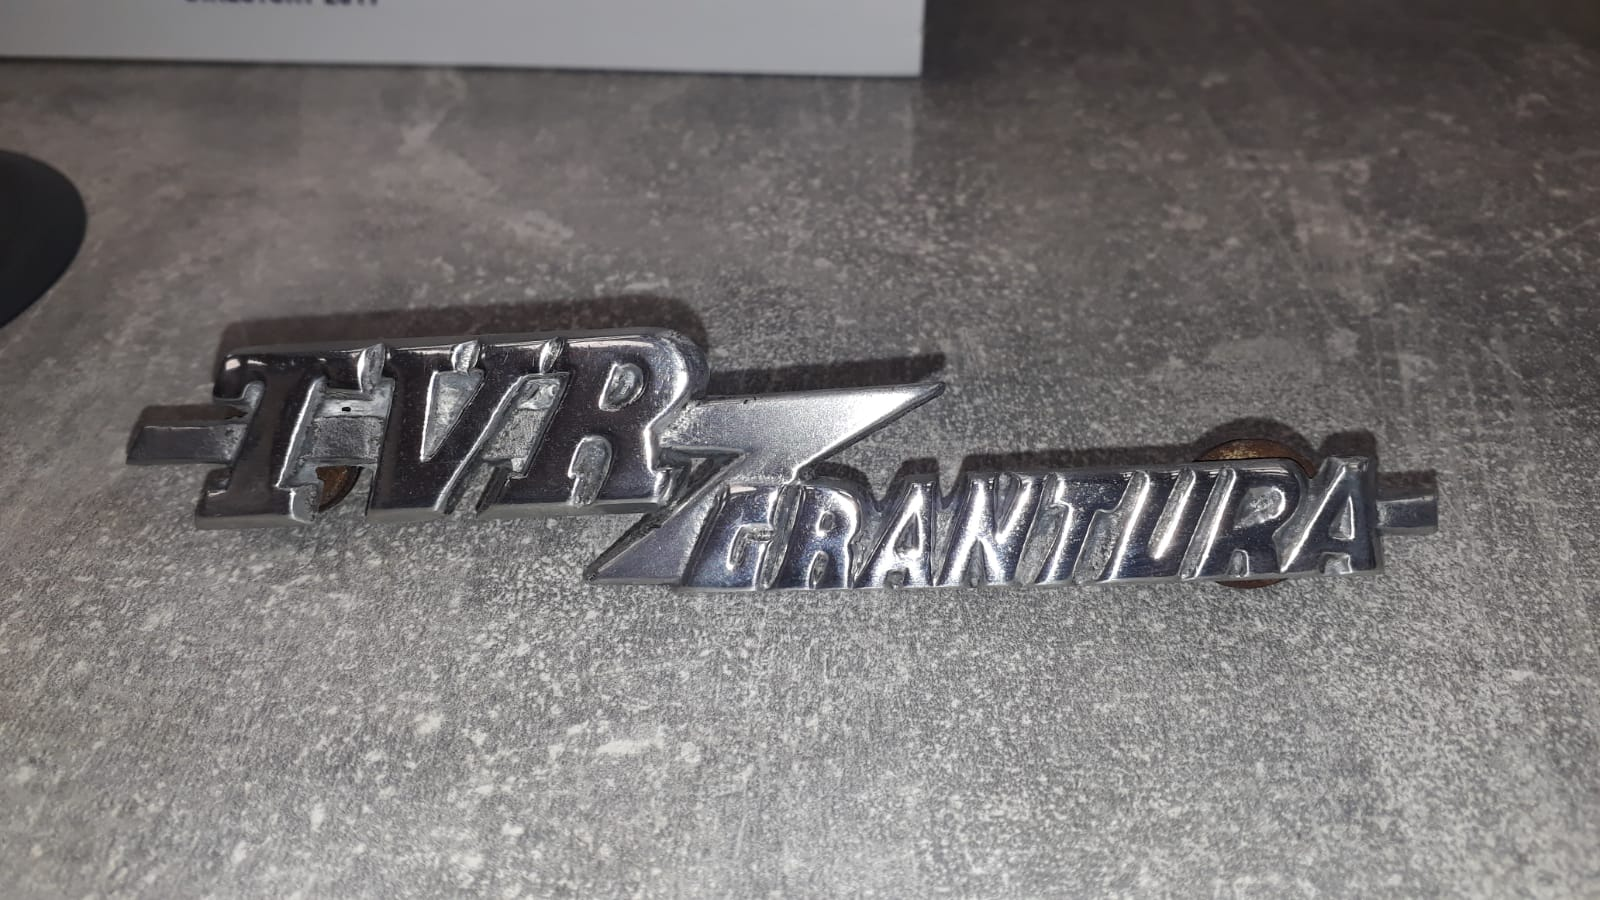 Polishing some of the TVR Grantura parts